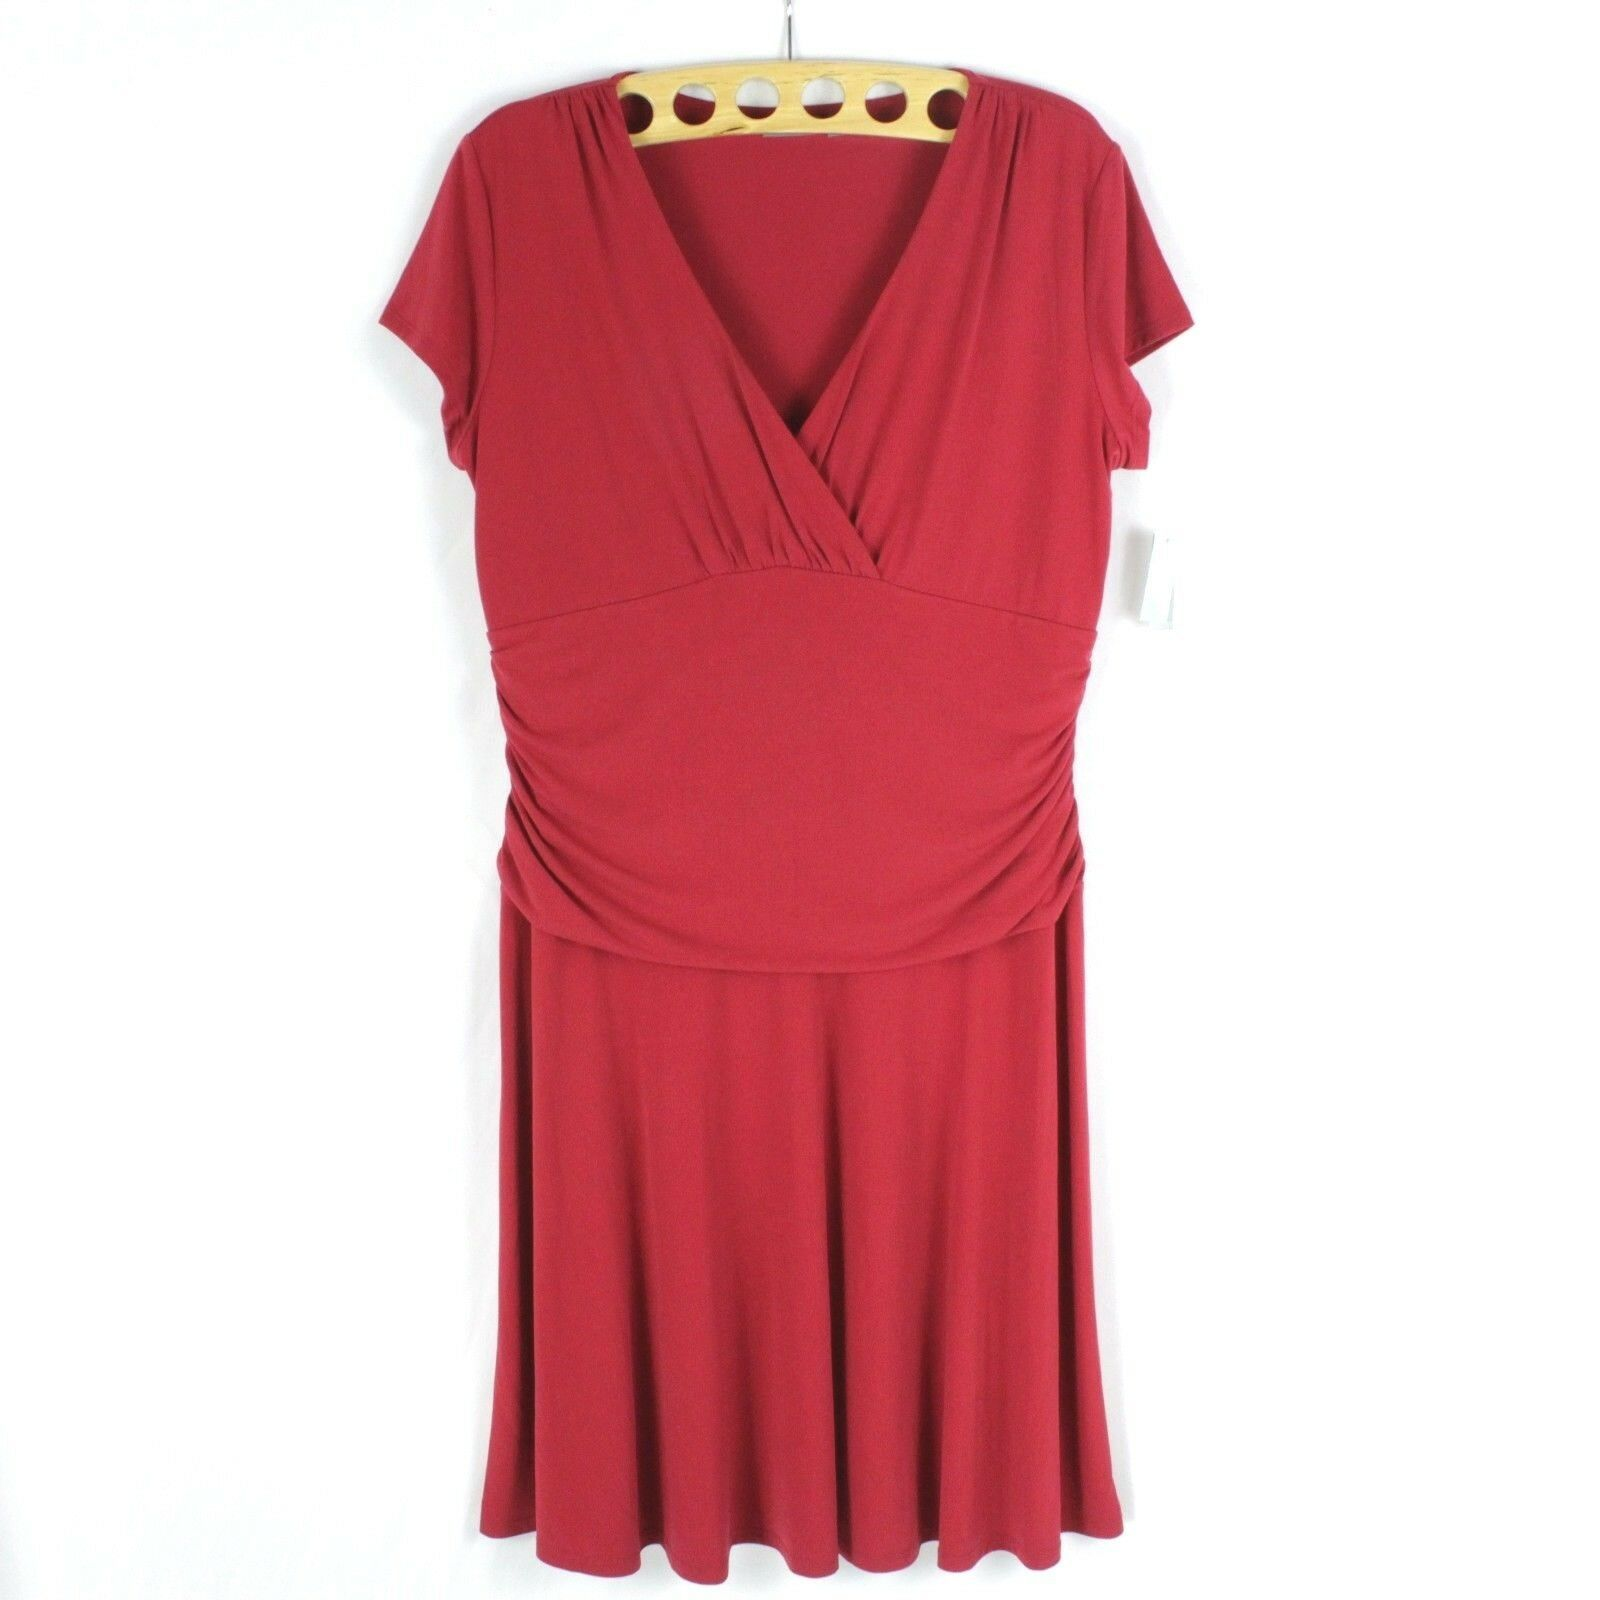 Primary image for NEW Women's Stretch Cocktail Shift Dress Casual Red Vneck Size XL Ruched NWT